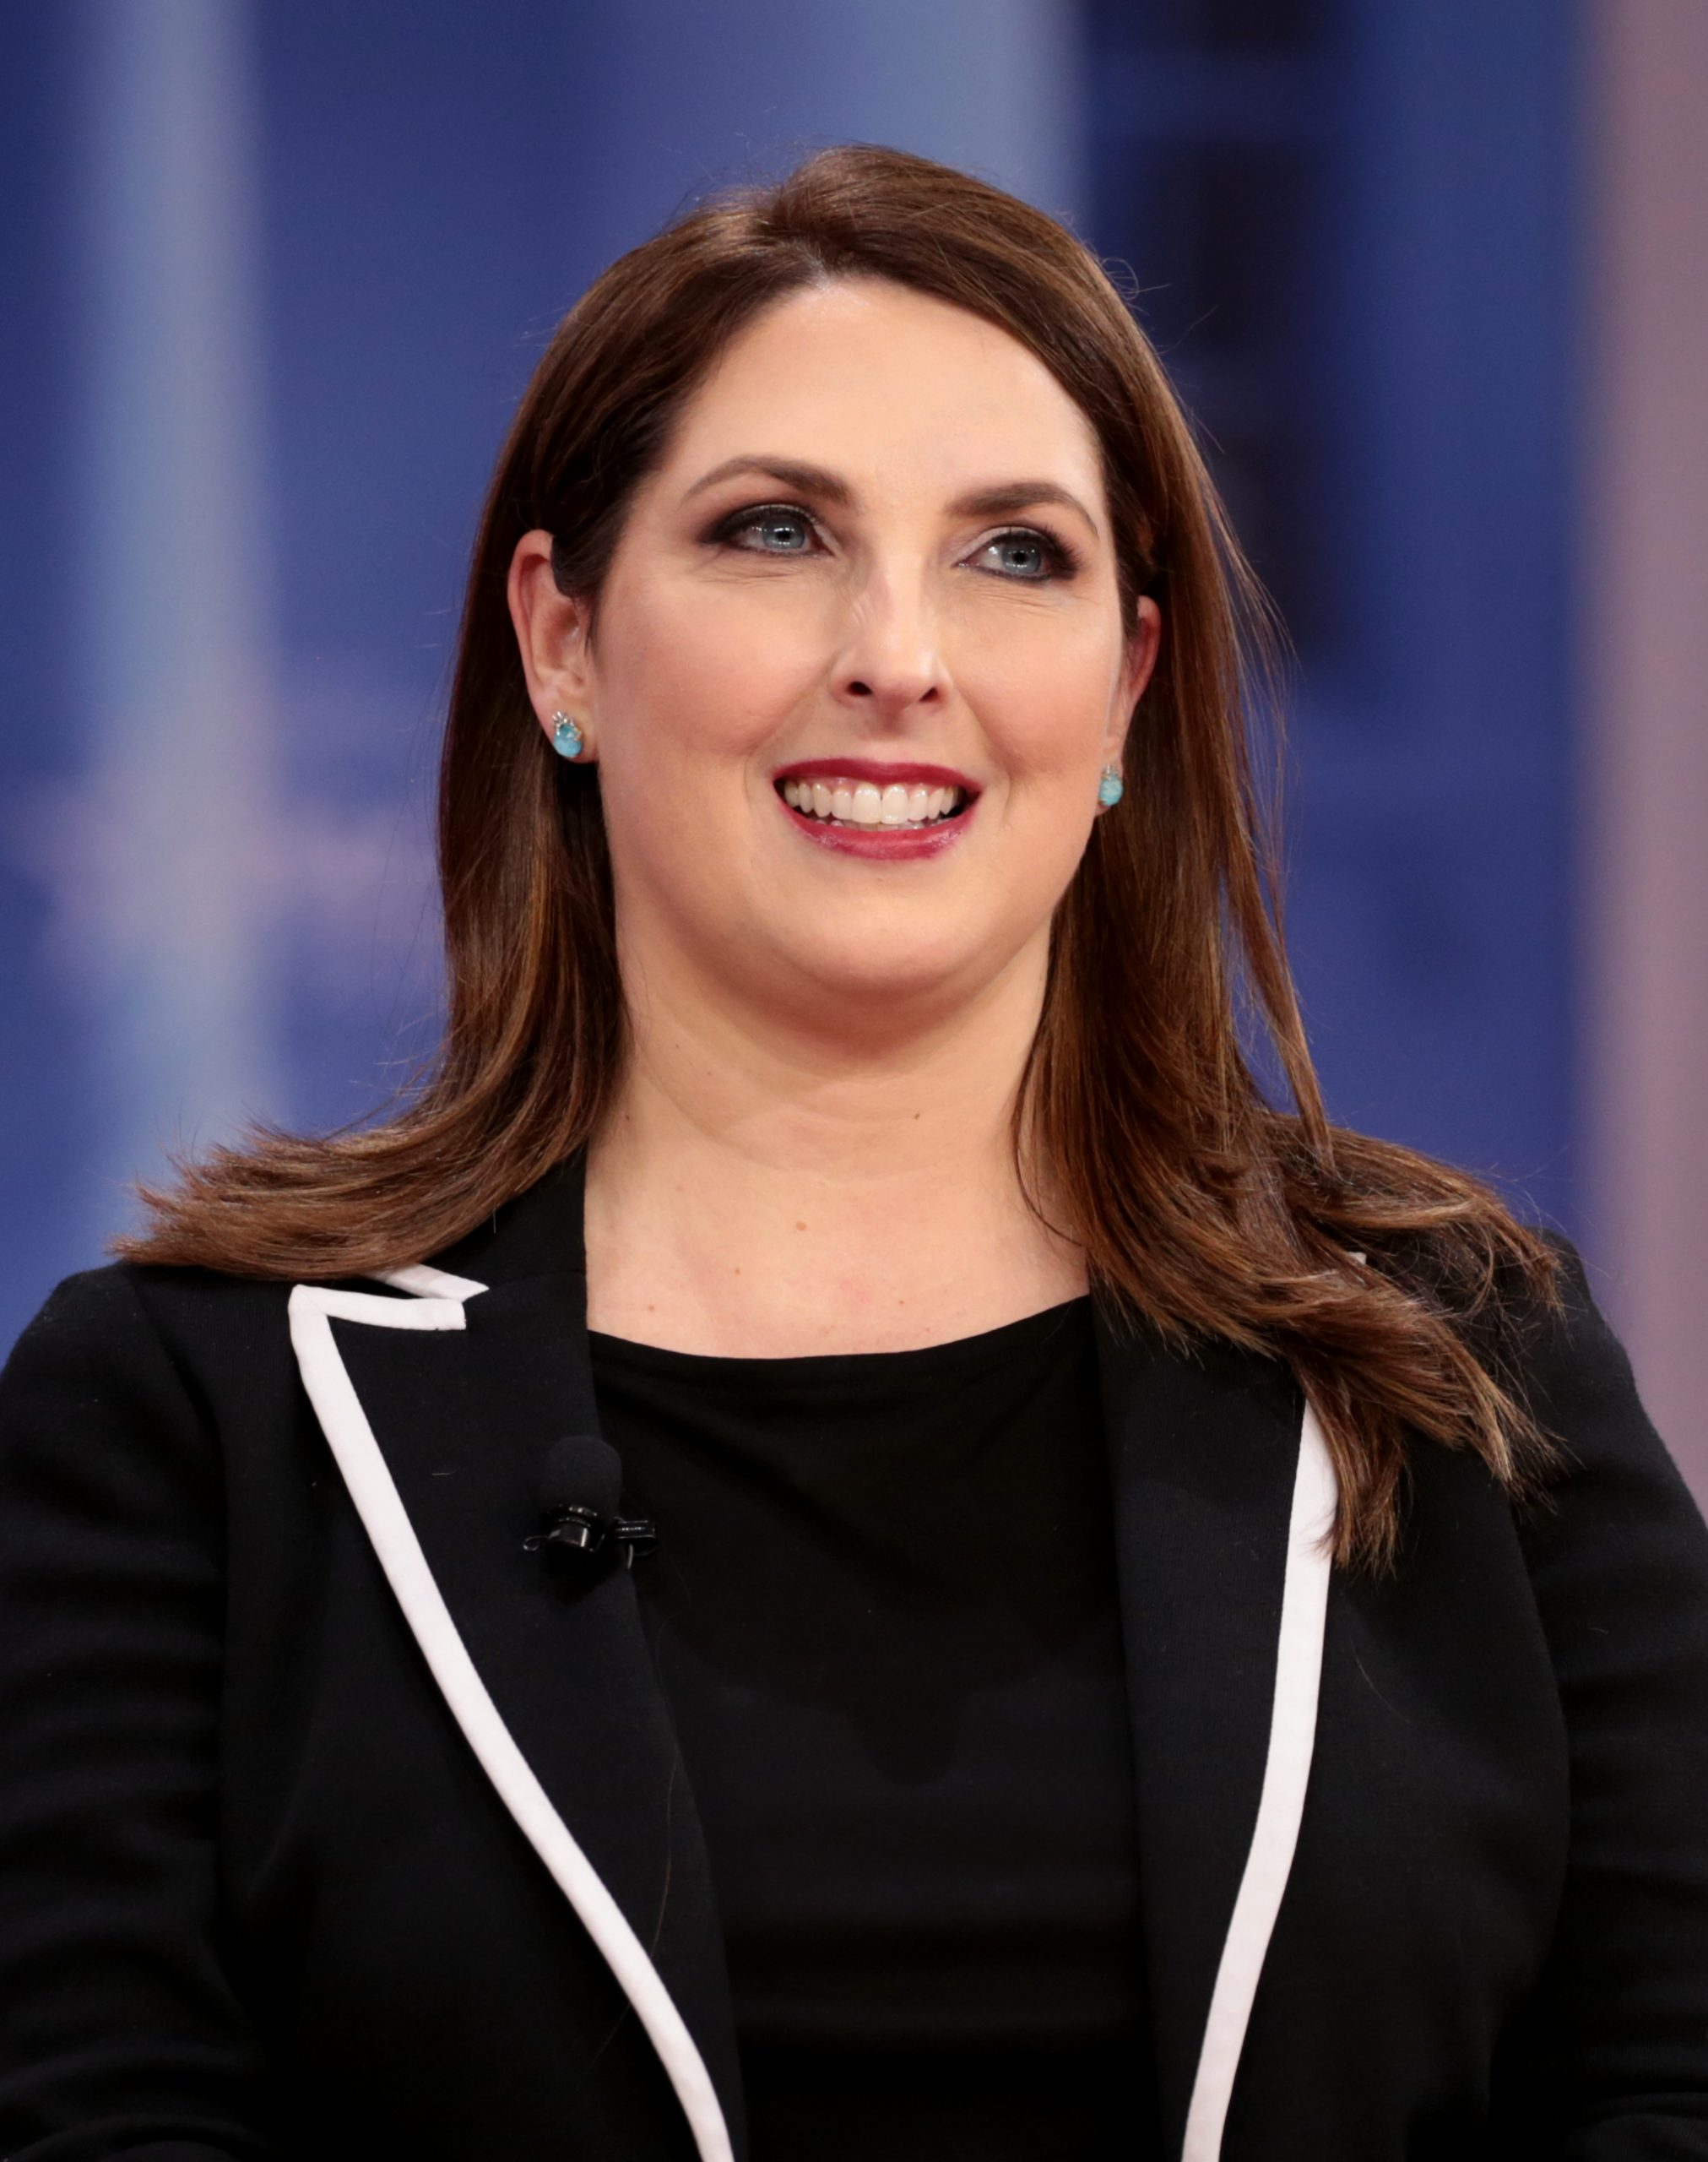 GOP Chairwoman Ronna McDaniel 'We are Seeing Democrats and Independents in Droves' at Trump Rallies